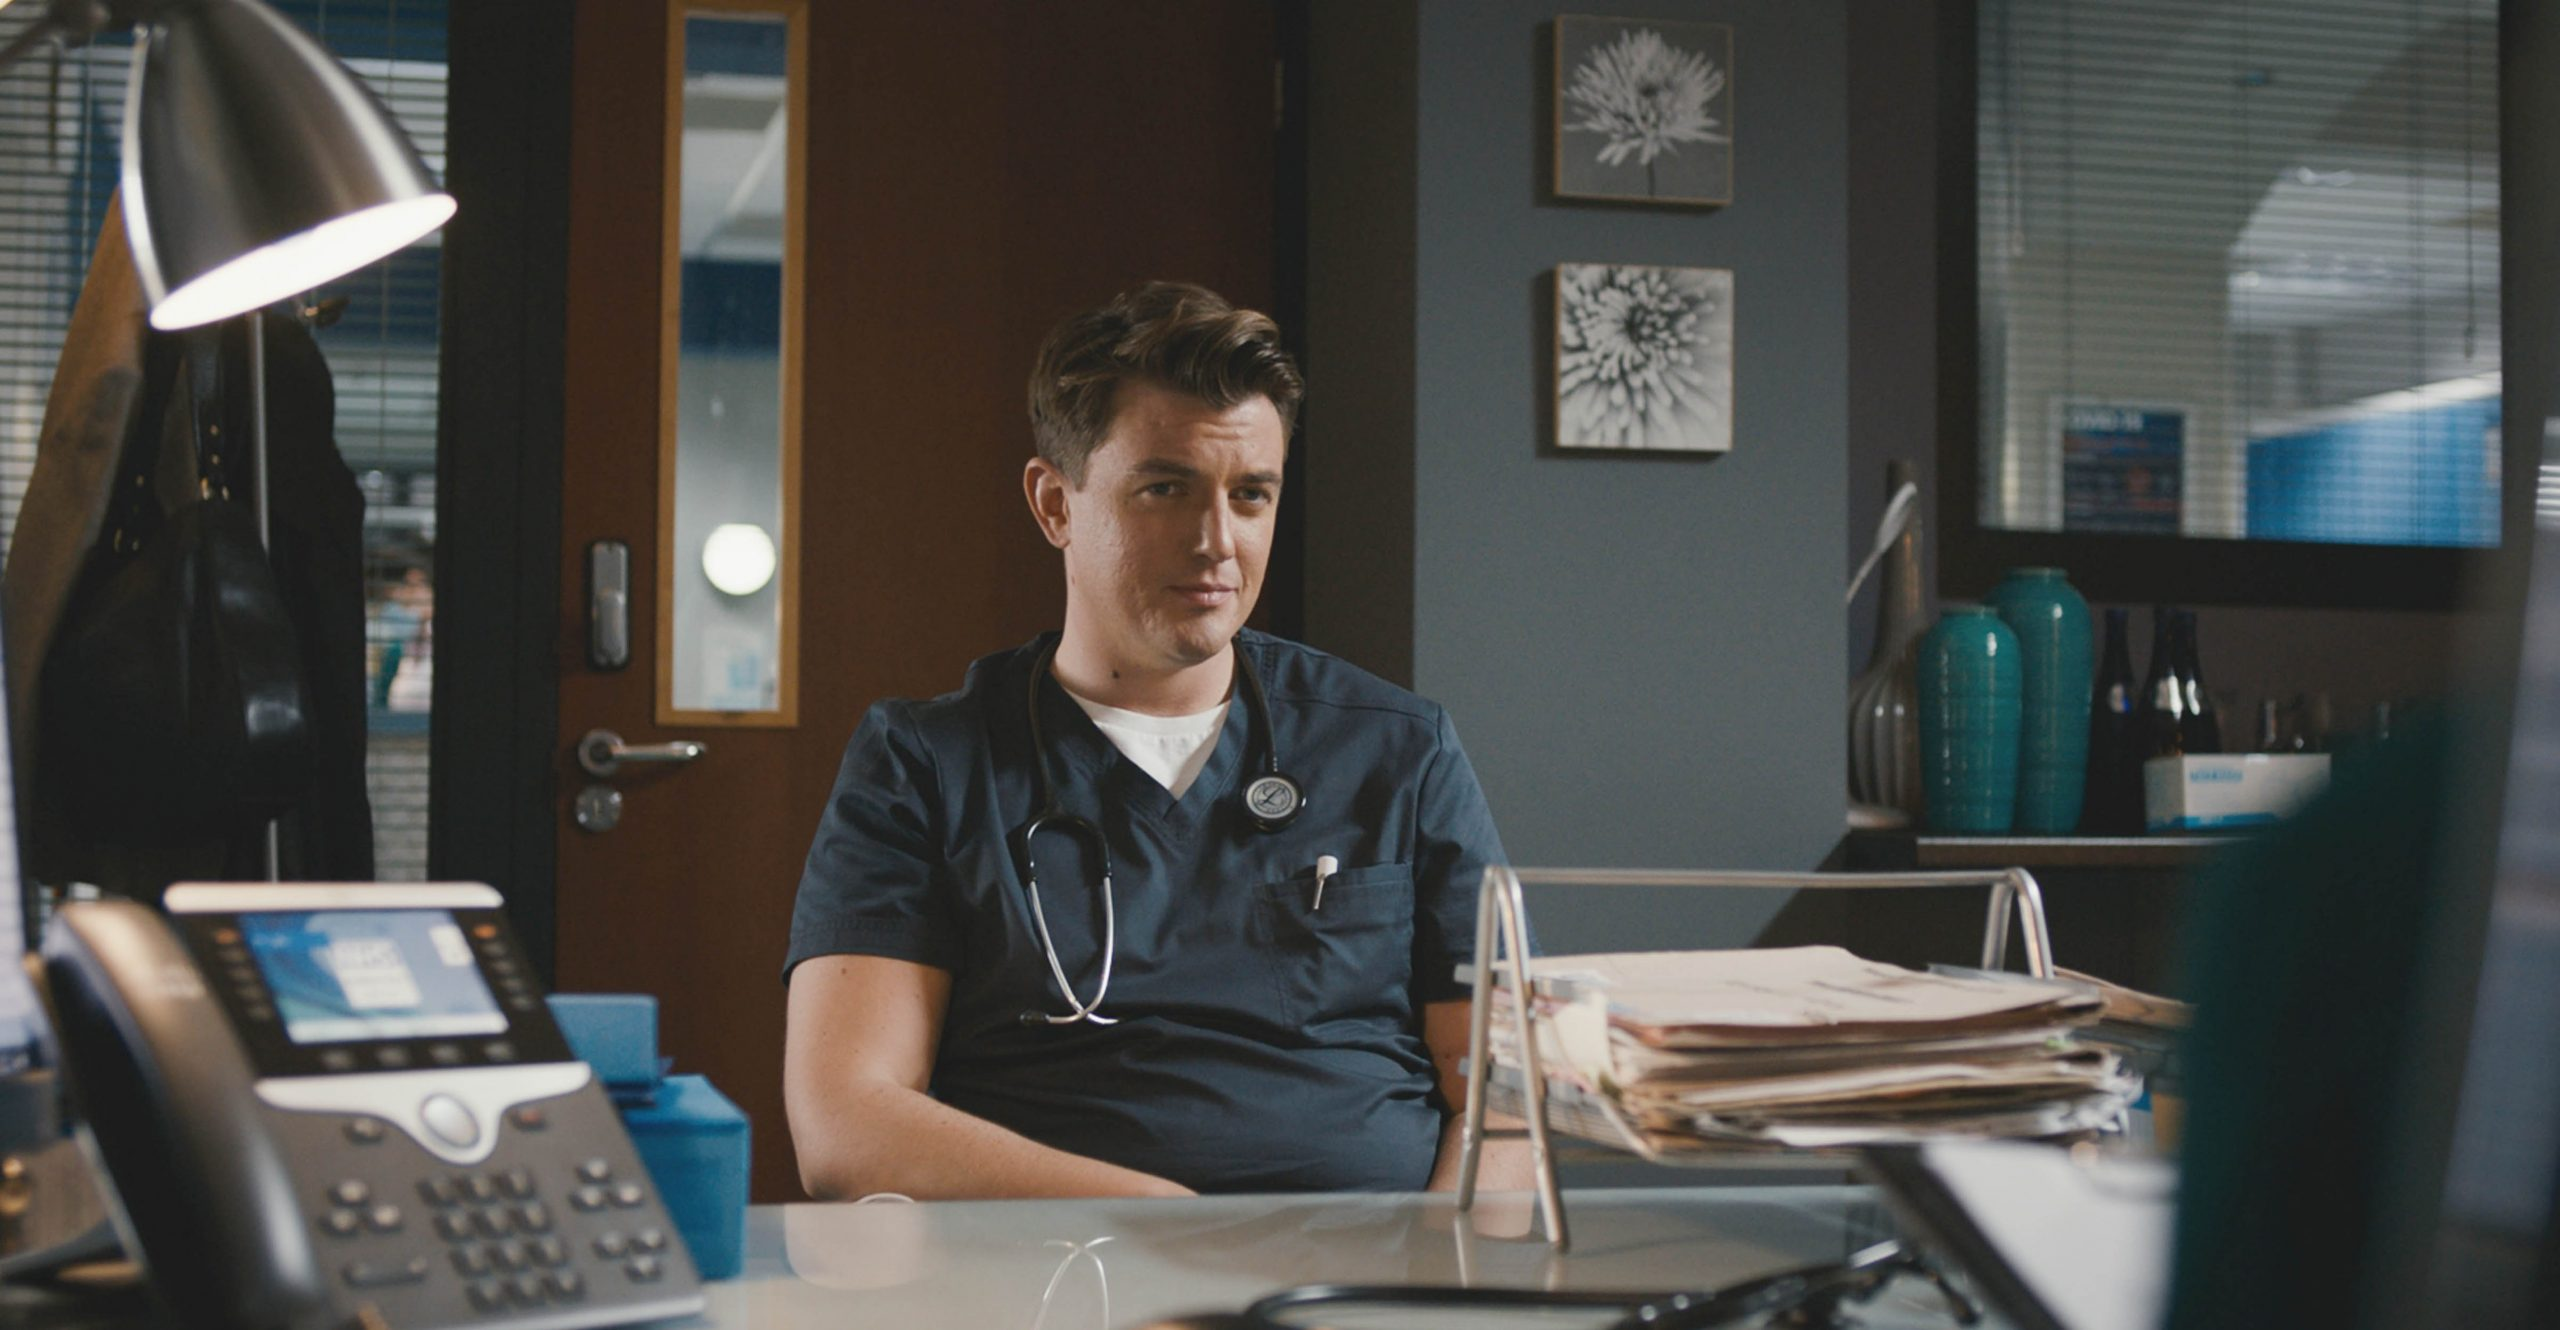 Will Noble squares up to Connie on his last day in Casualty